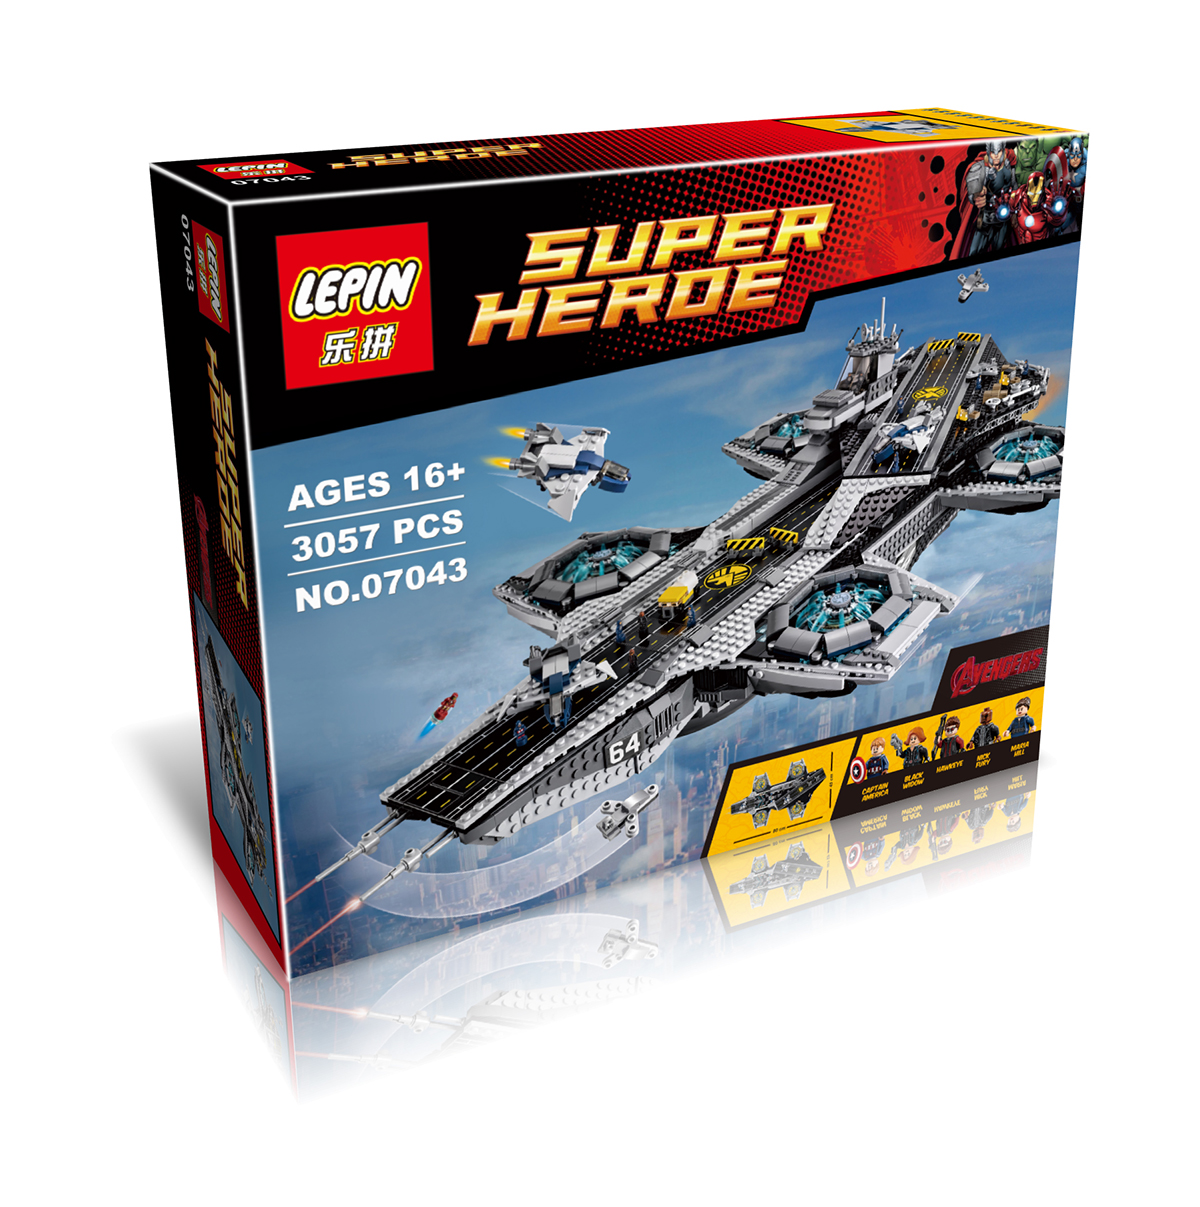 3057+ PCS Building Bricks, LP 07043 Building Blocks Super Heroes 76042 The S.H.I.E.L.D. Helicarrier.